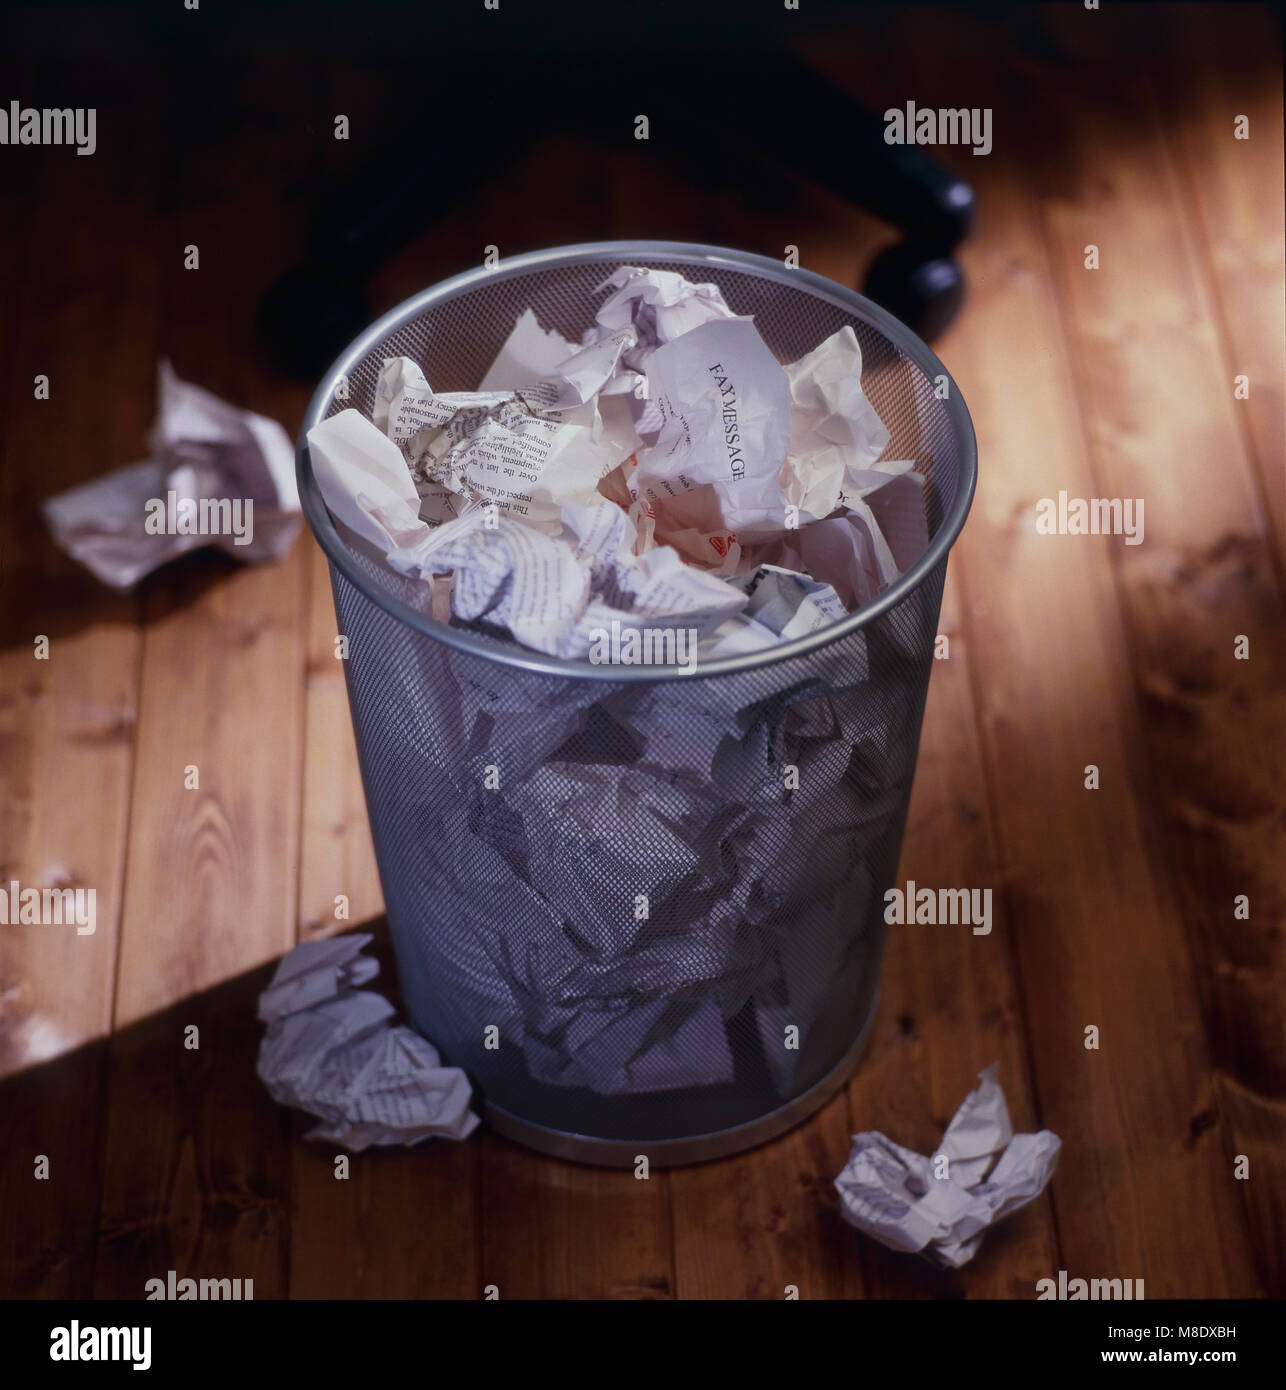 Office waste bin full of wastepaper - Stock Image